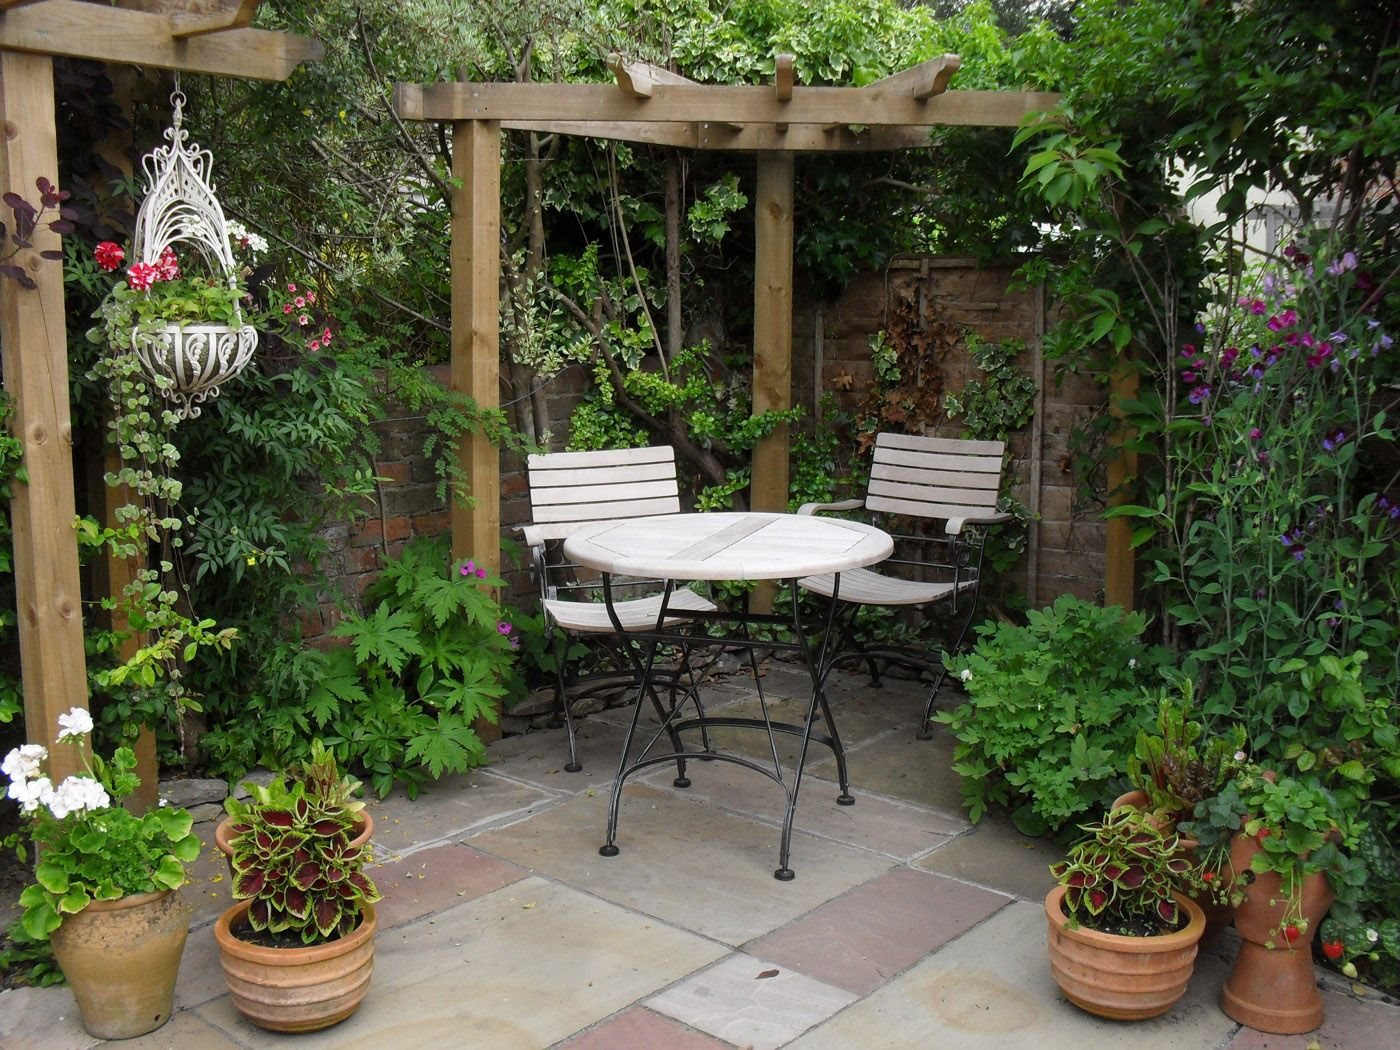 Garden Designs For Small Gardens Best 25 Small Gardens Ideas On Pinterest  Small Garden .